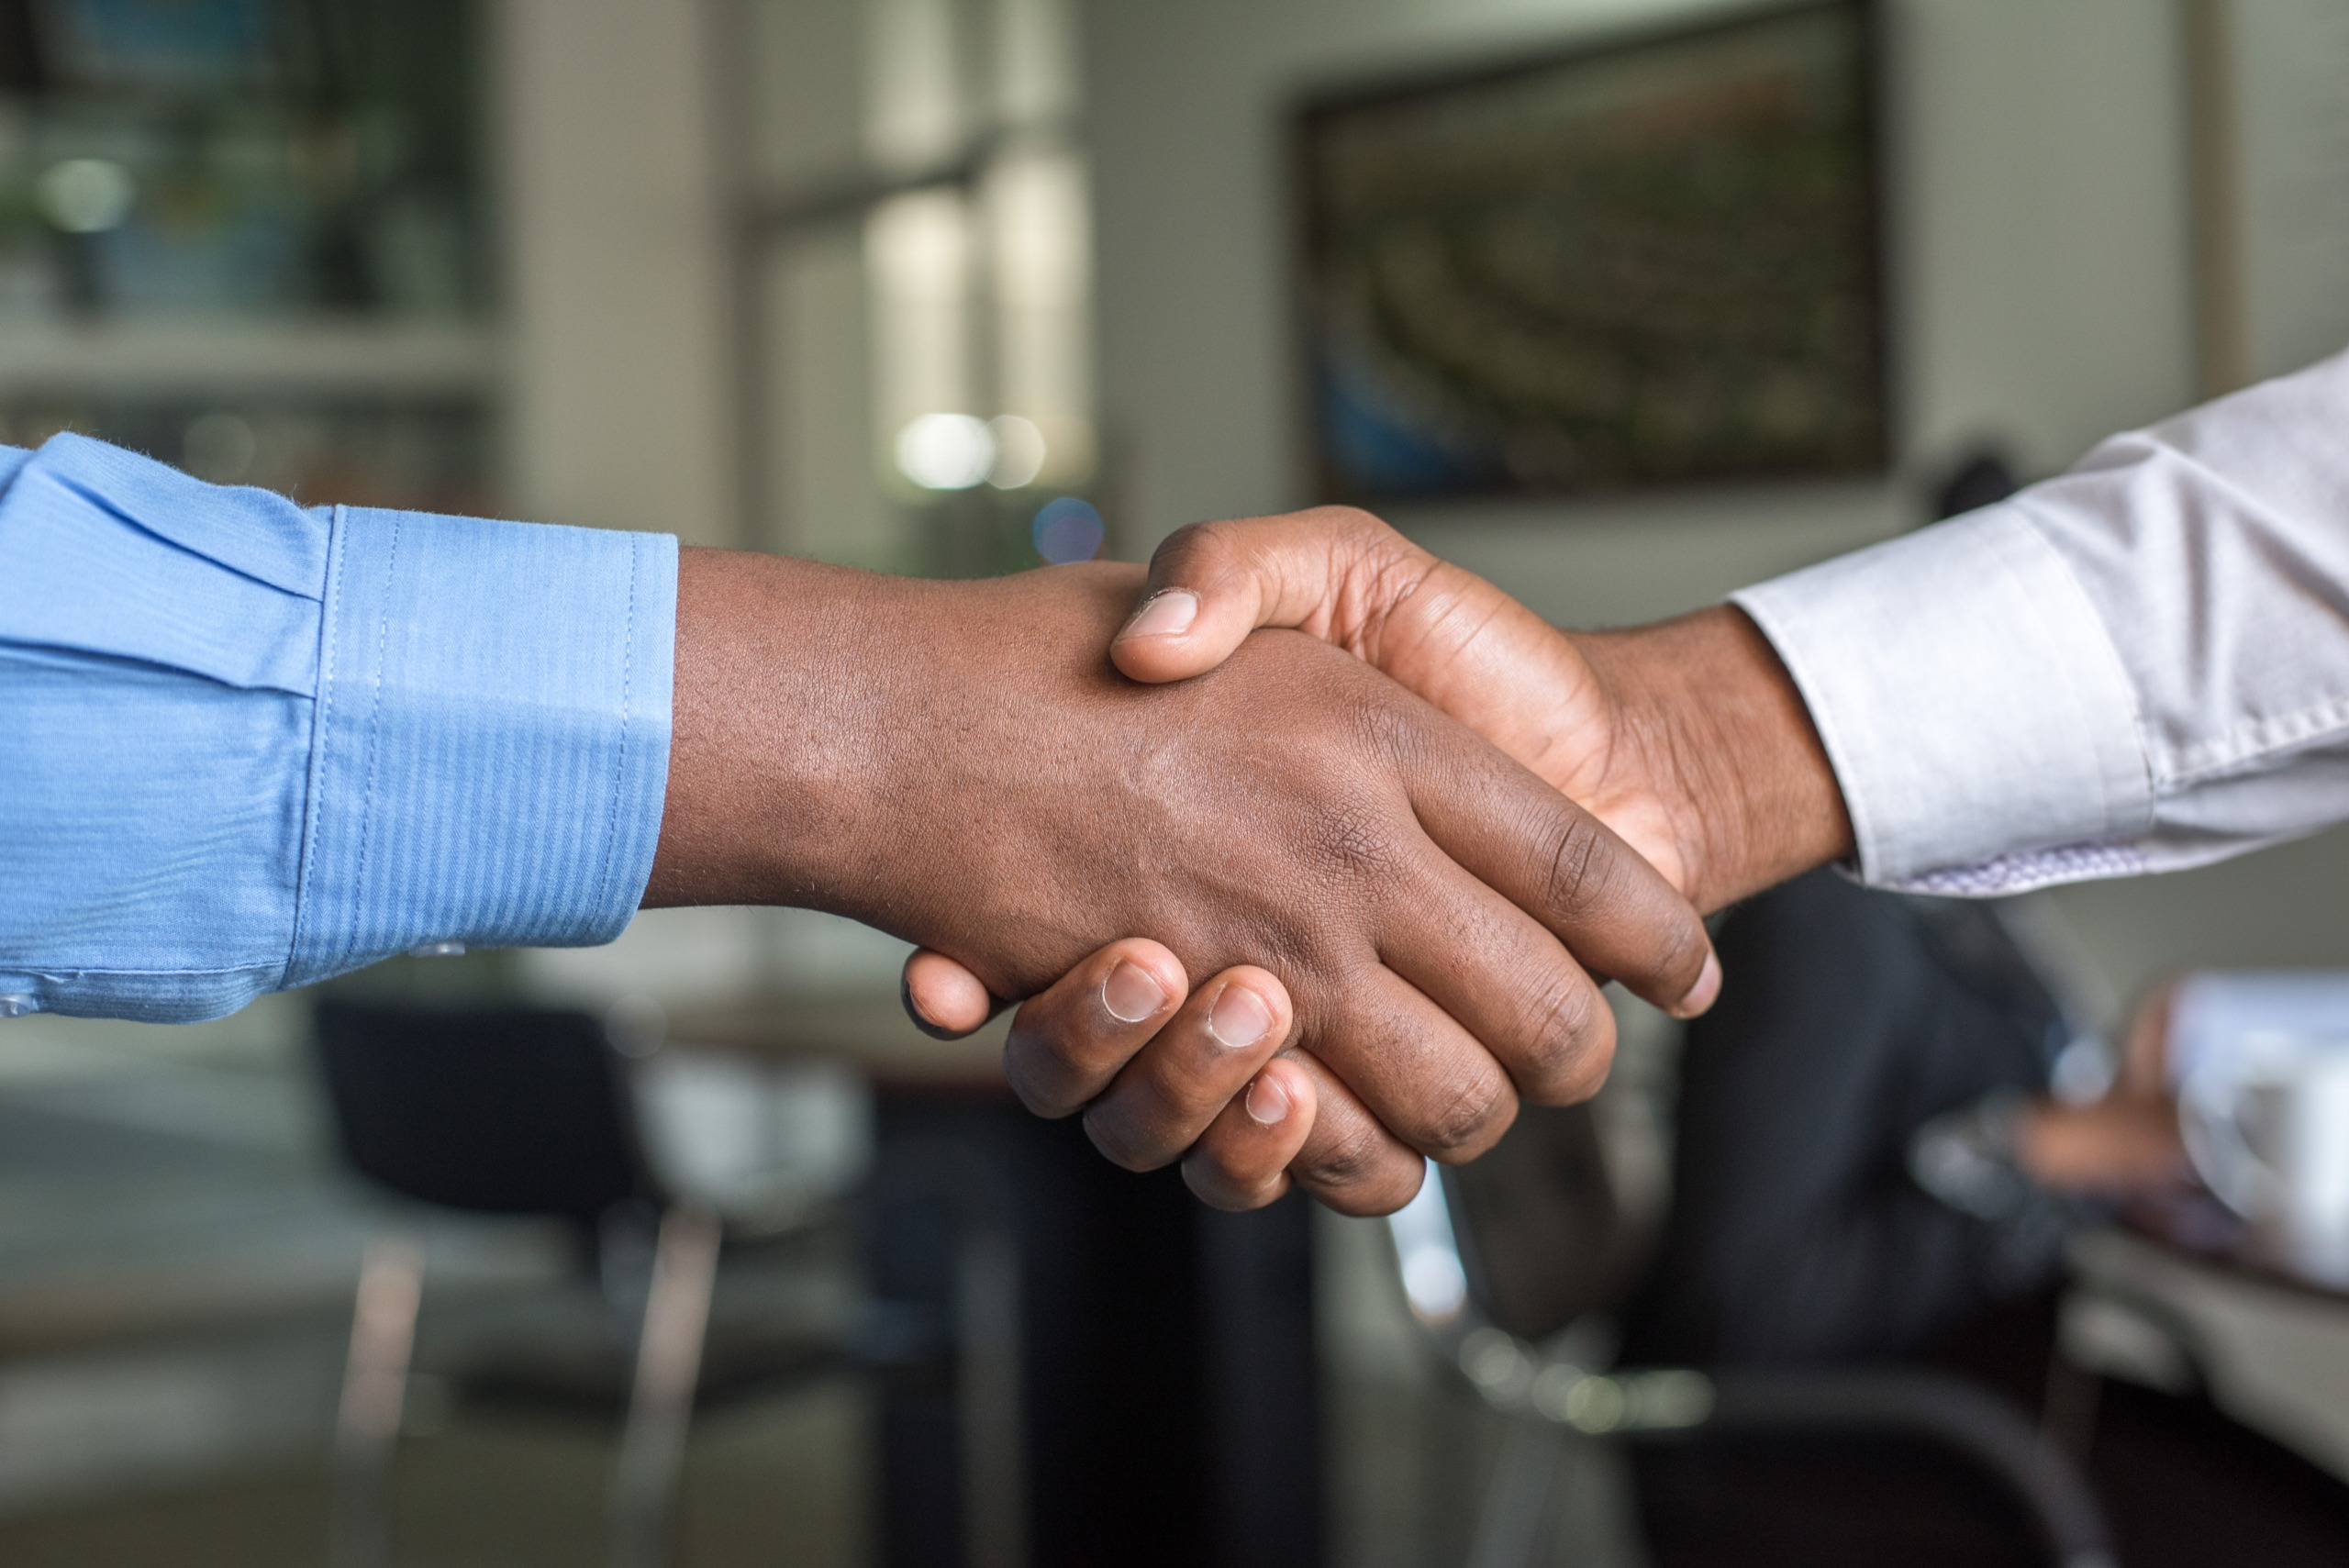 Recruitment agency staff shaking hands with a job candidate.